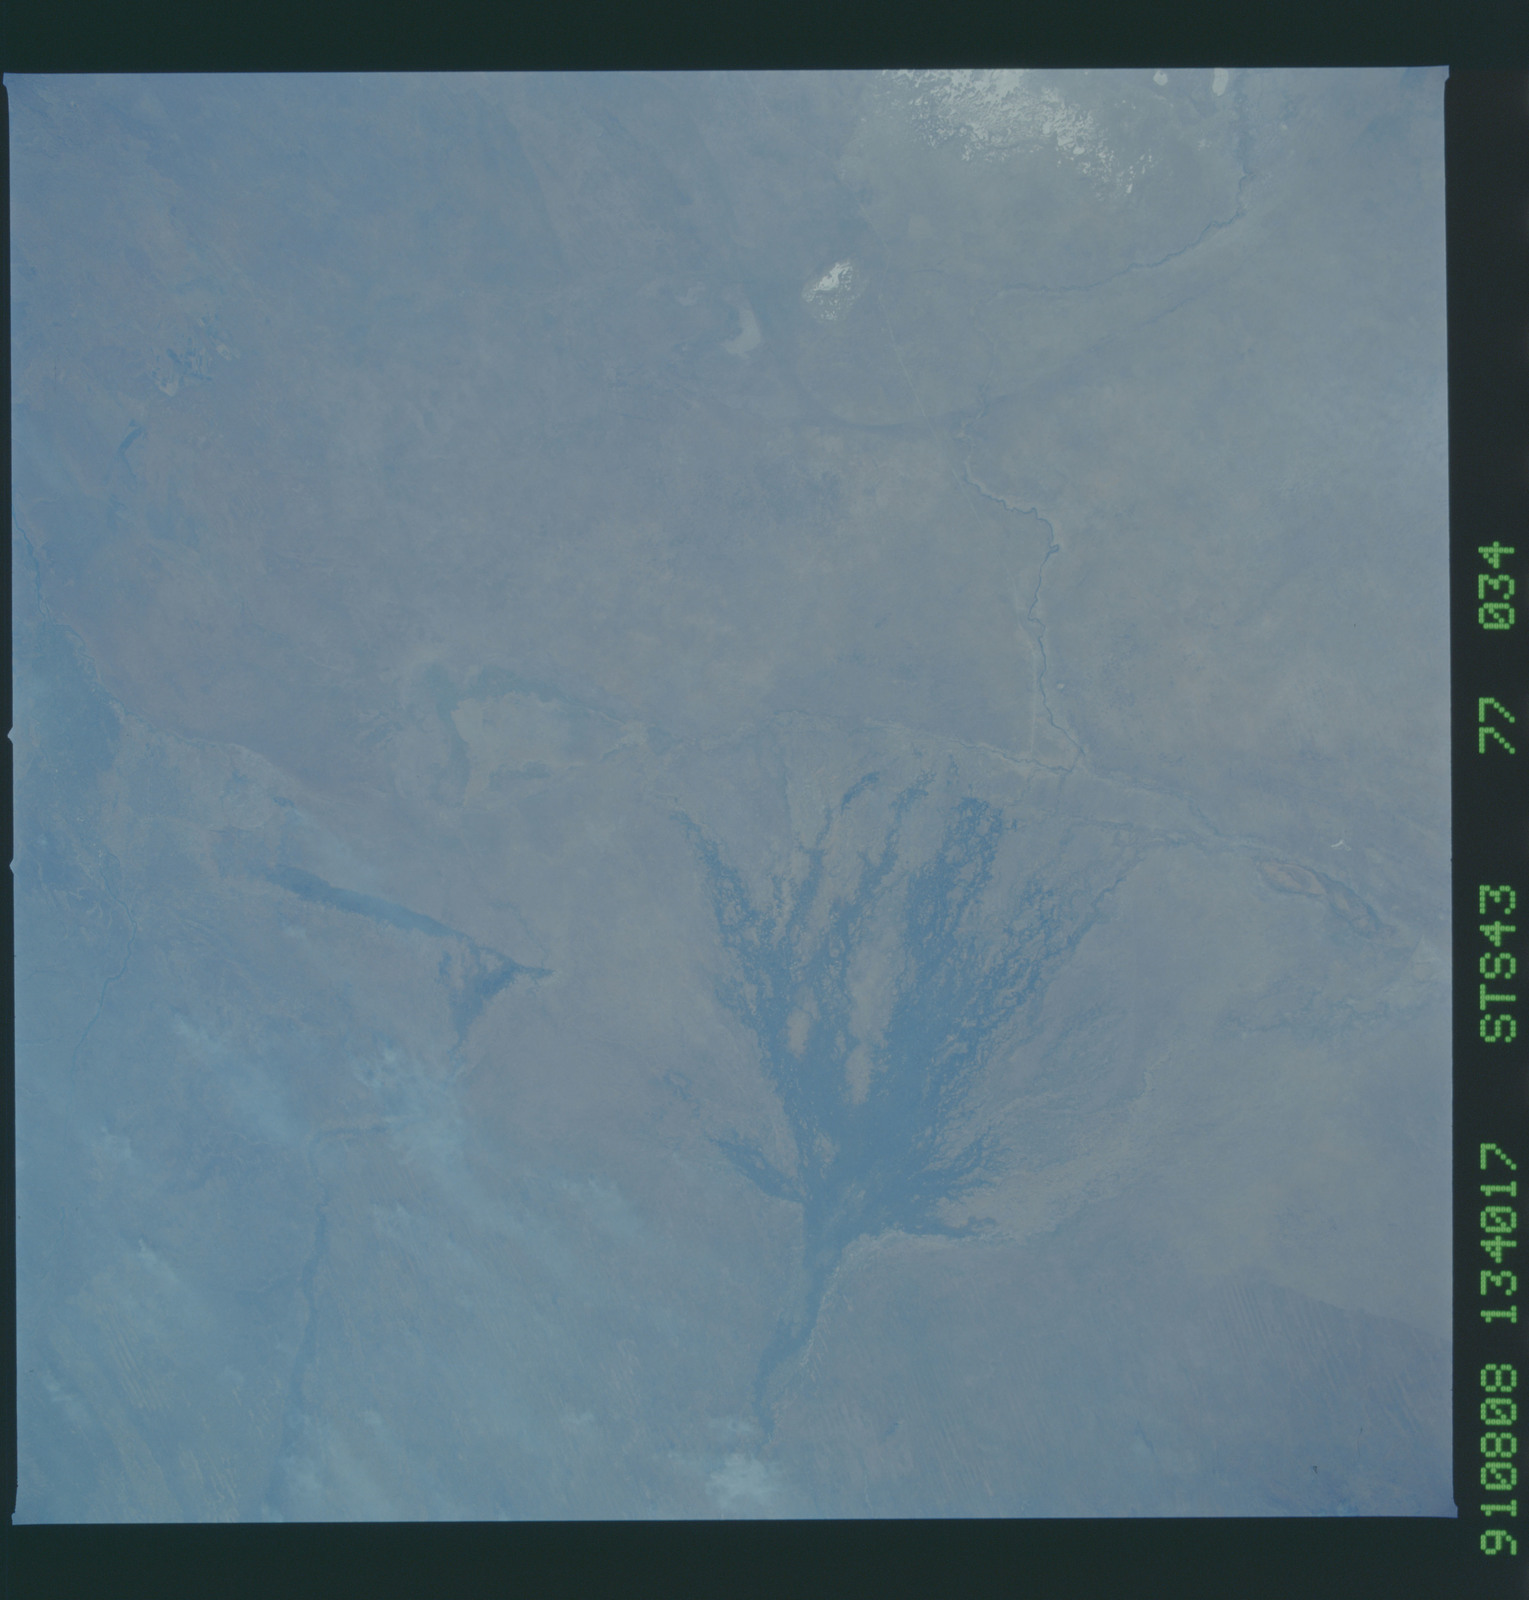 S43-77-034 - STS-043 - STS-43 earth observations